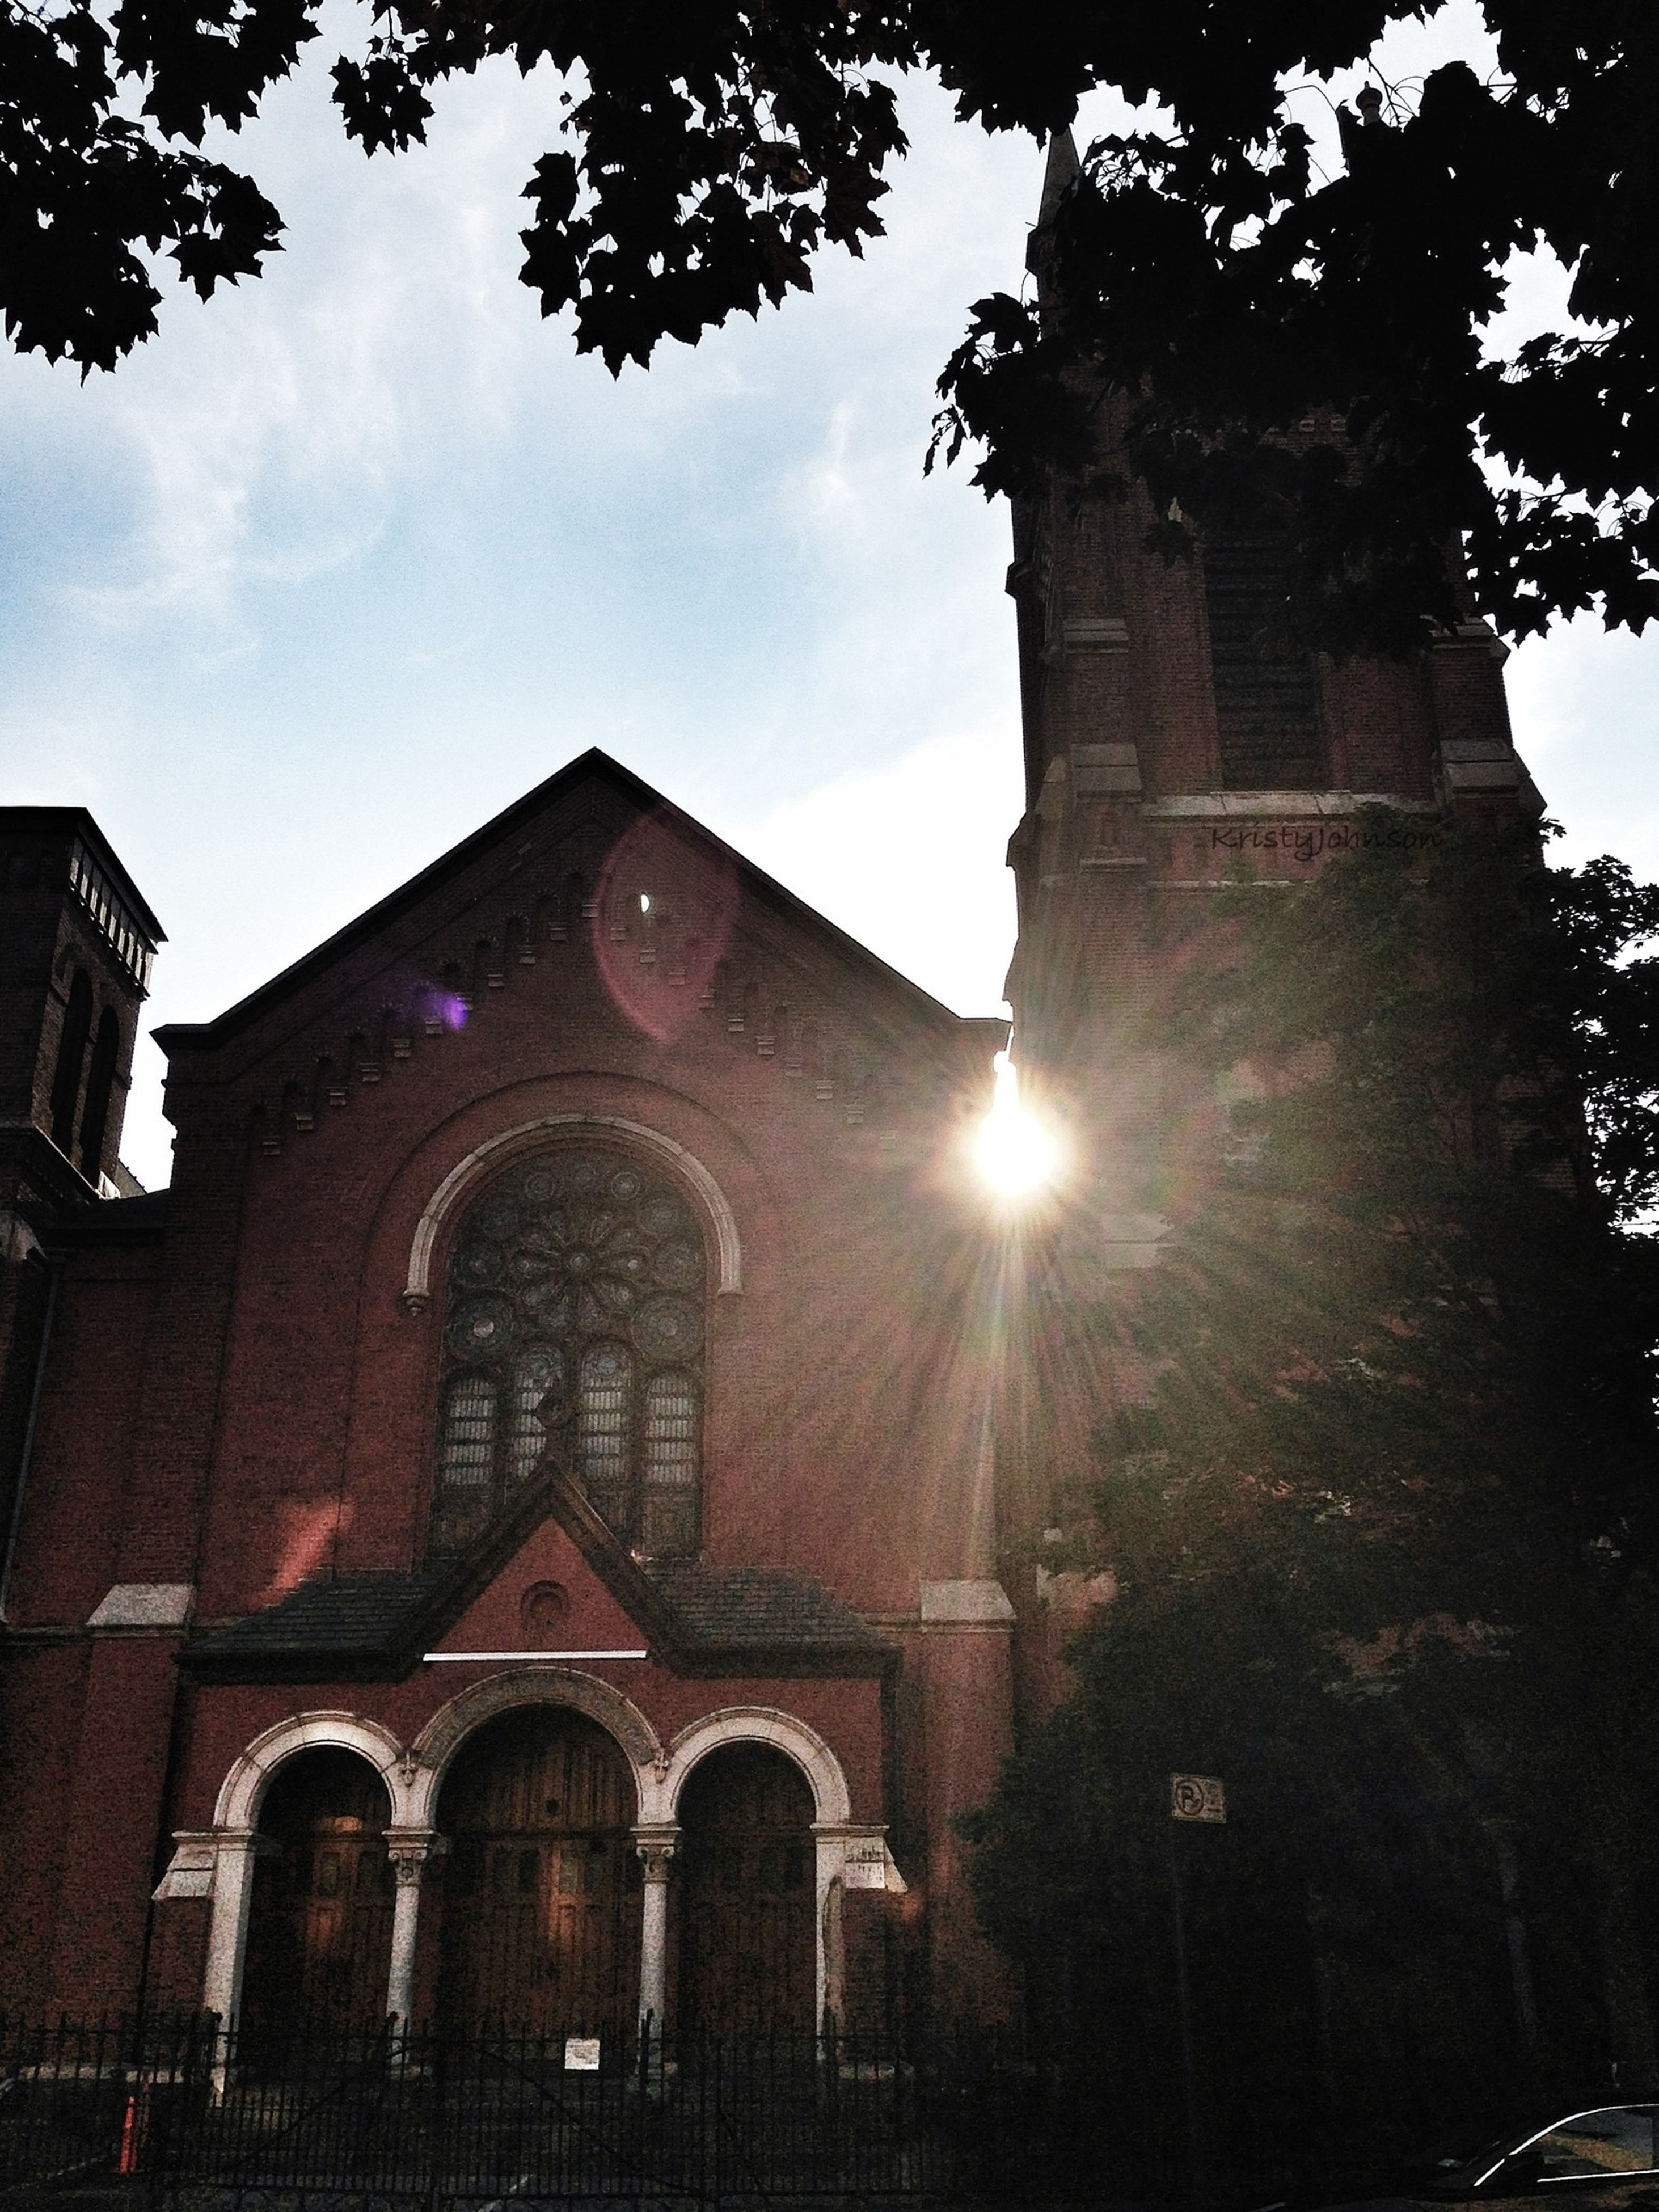 architecture, religion, place of worship, building exterior, built structure, spirituality, church, low angle view, cathedral, sky, history, tree, sunlight, sun, old, cross, sunbeam, outdoors